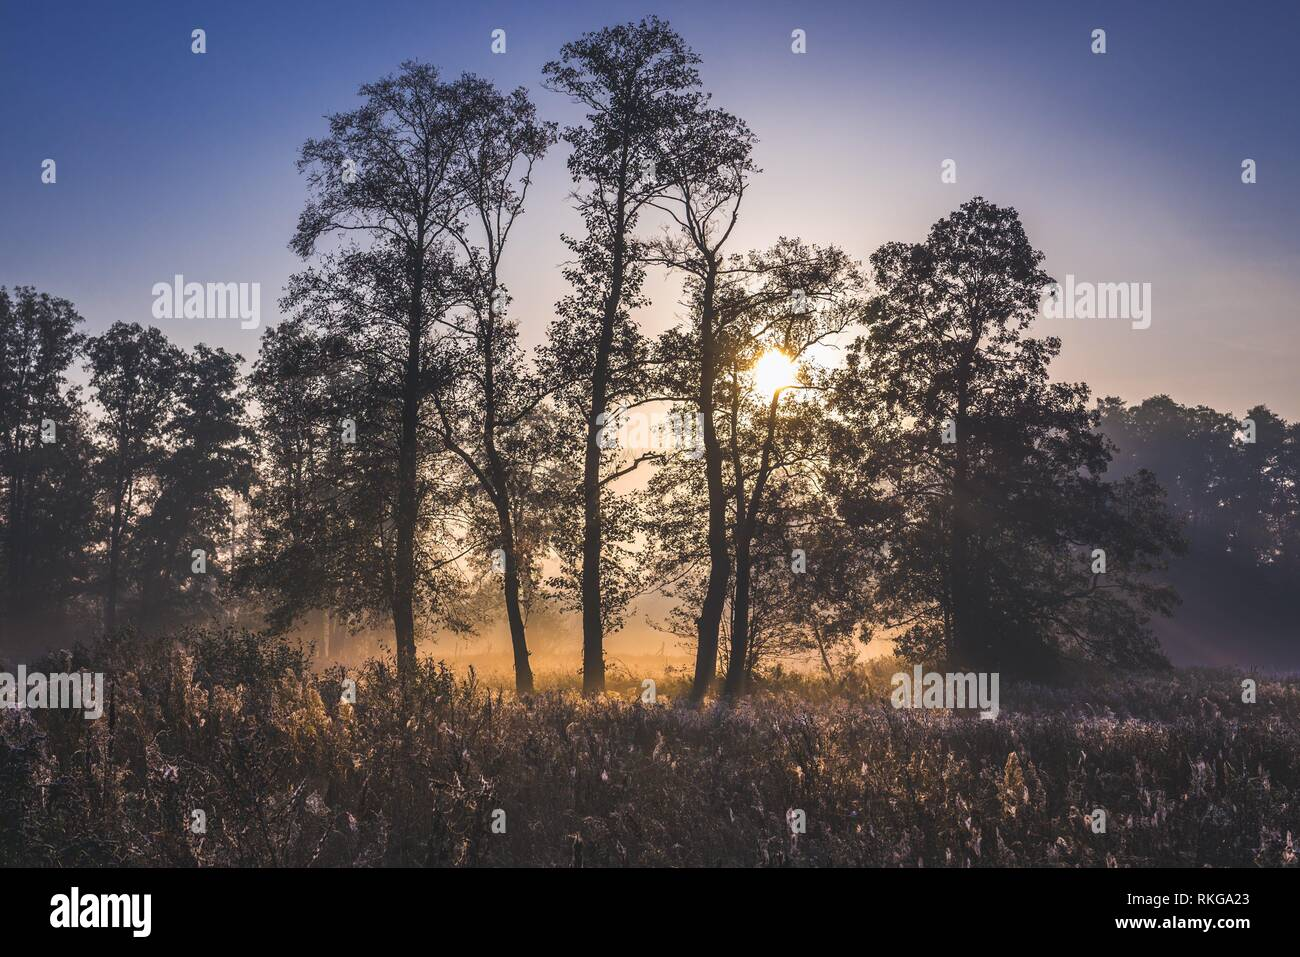 Sunrise in Gorki village, Sochaczew County on the edge of Kampinos Forest, large forests complex in Masovian Voivodeship of Poland. - Stock Image